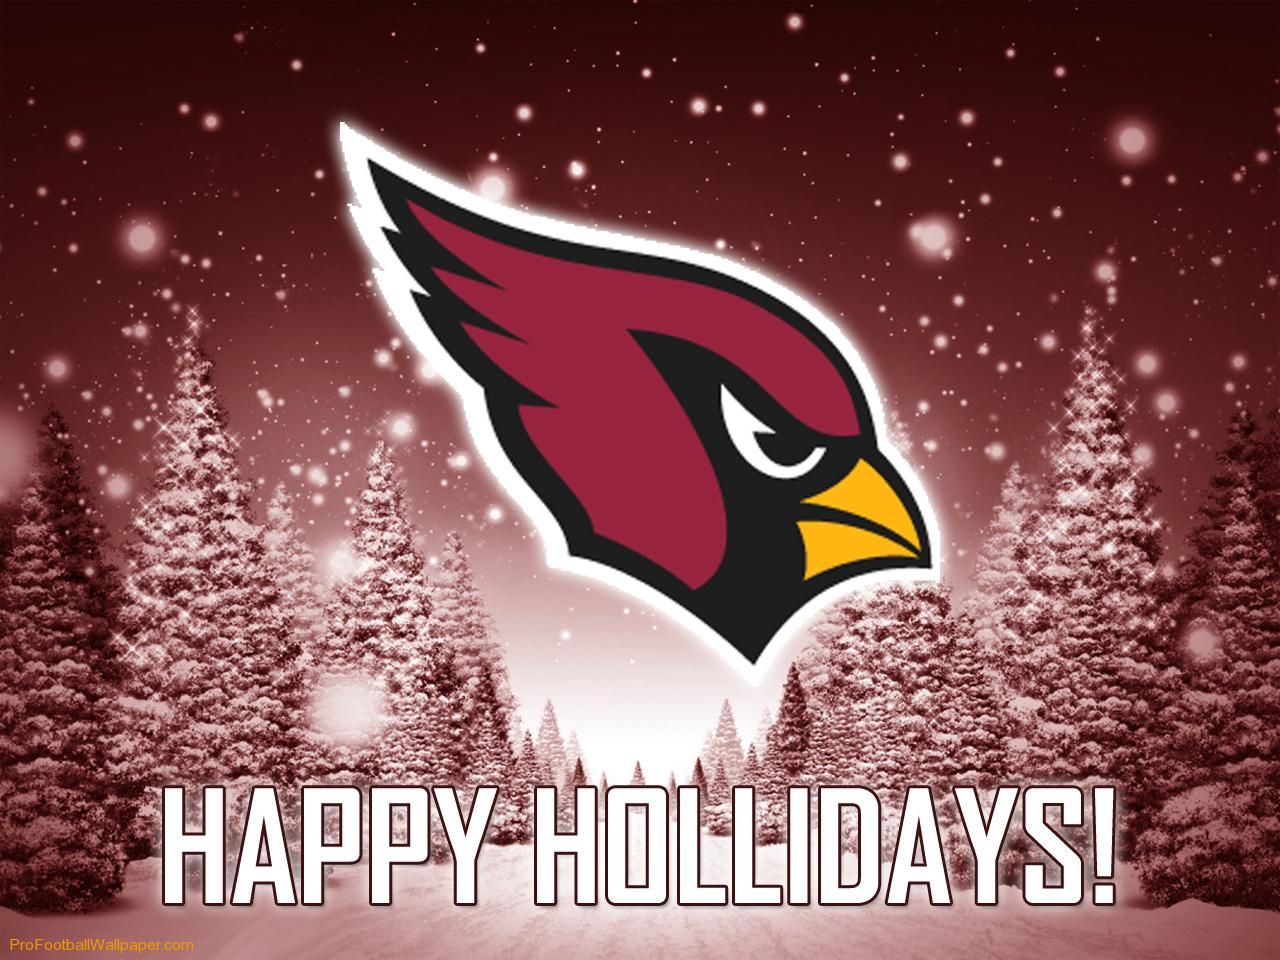 1000+ images about Arizona Cardinals Holidays on Pinterest ...